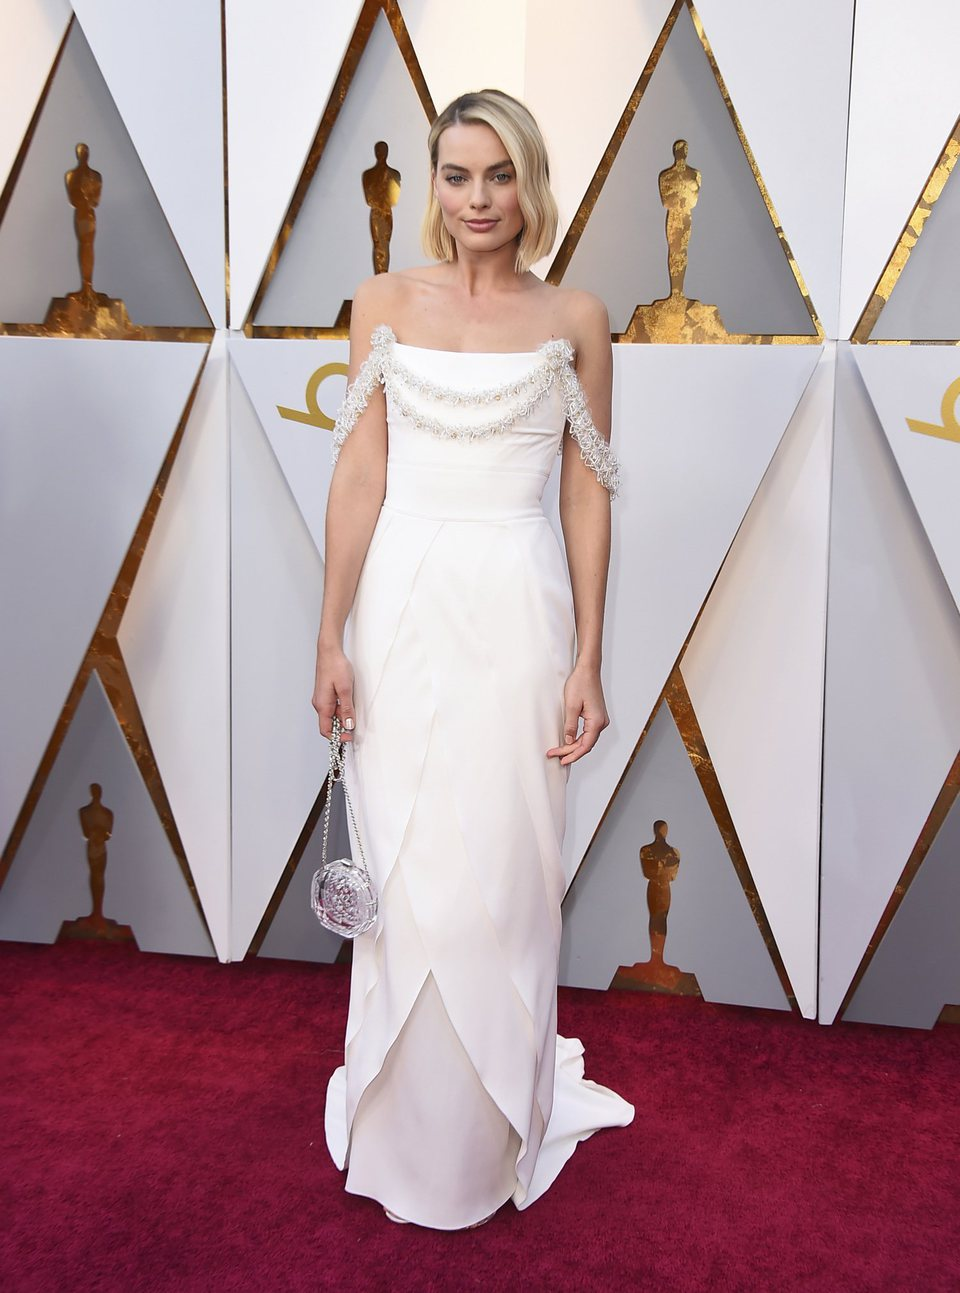 Margot Robbie at the Oscar 2018 red carpet